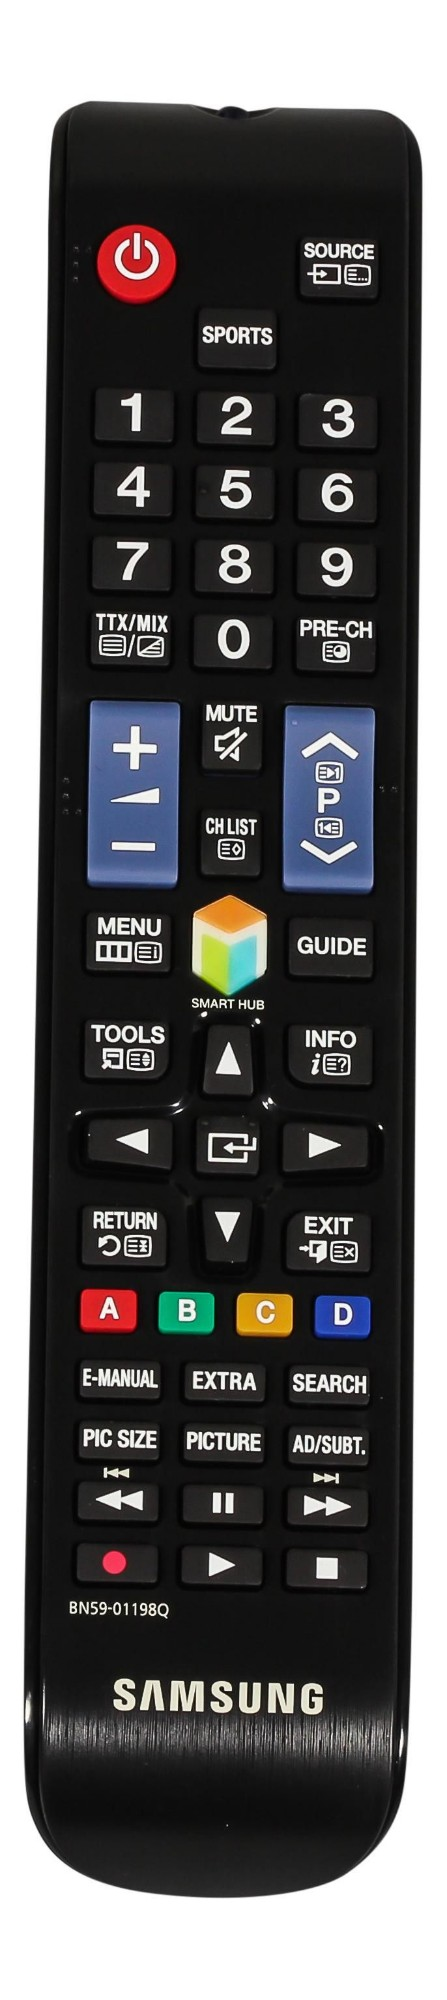 Samsung Remote Control - Approx 1-3 working day lead.